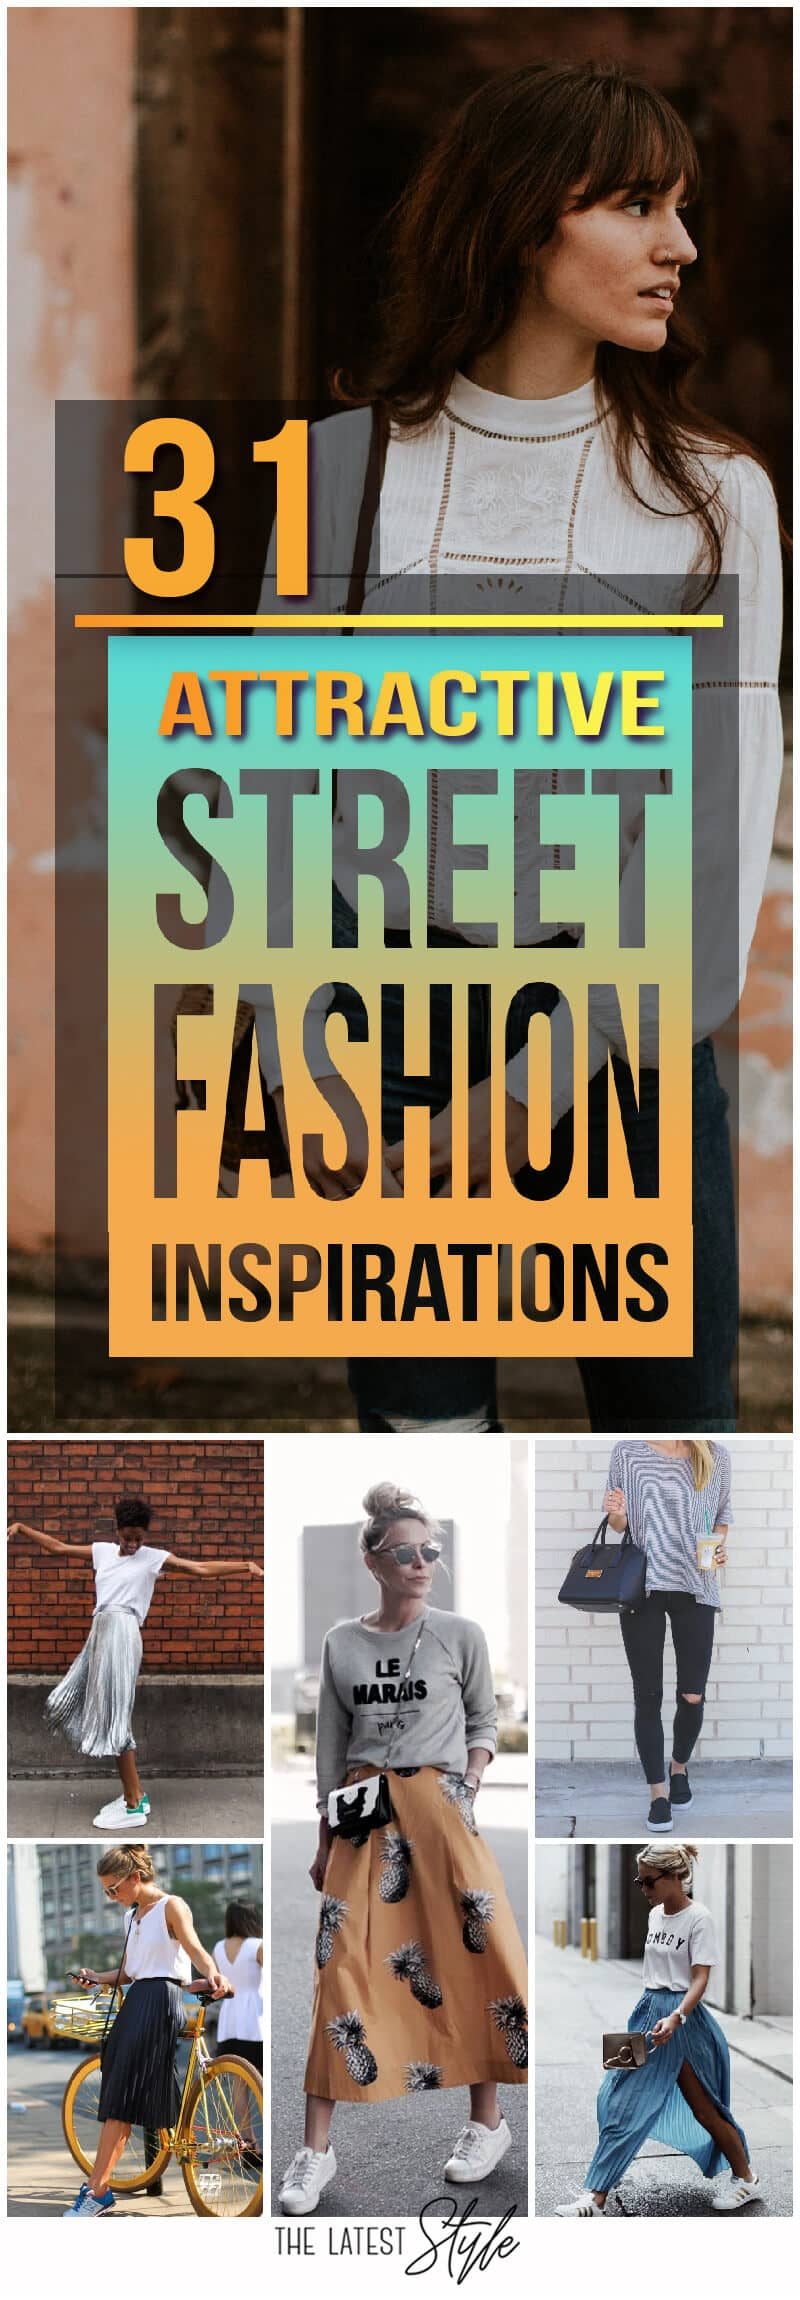 Street Fashion Ideas